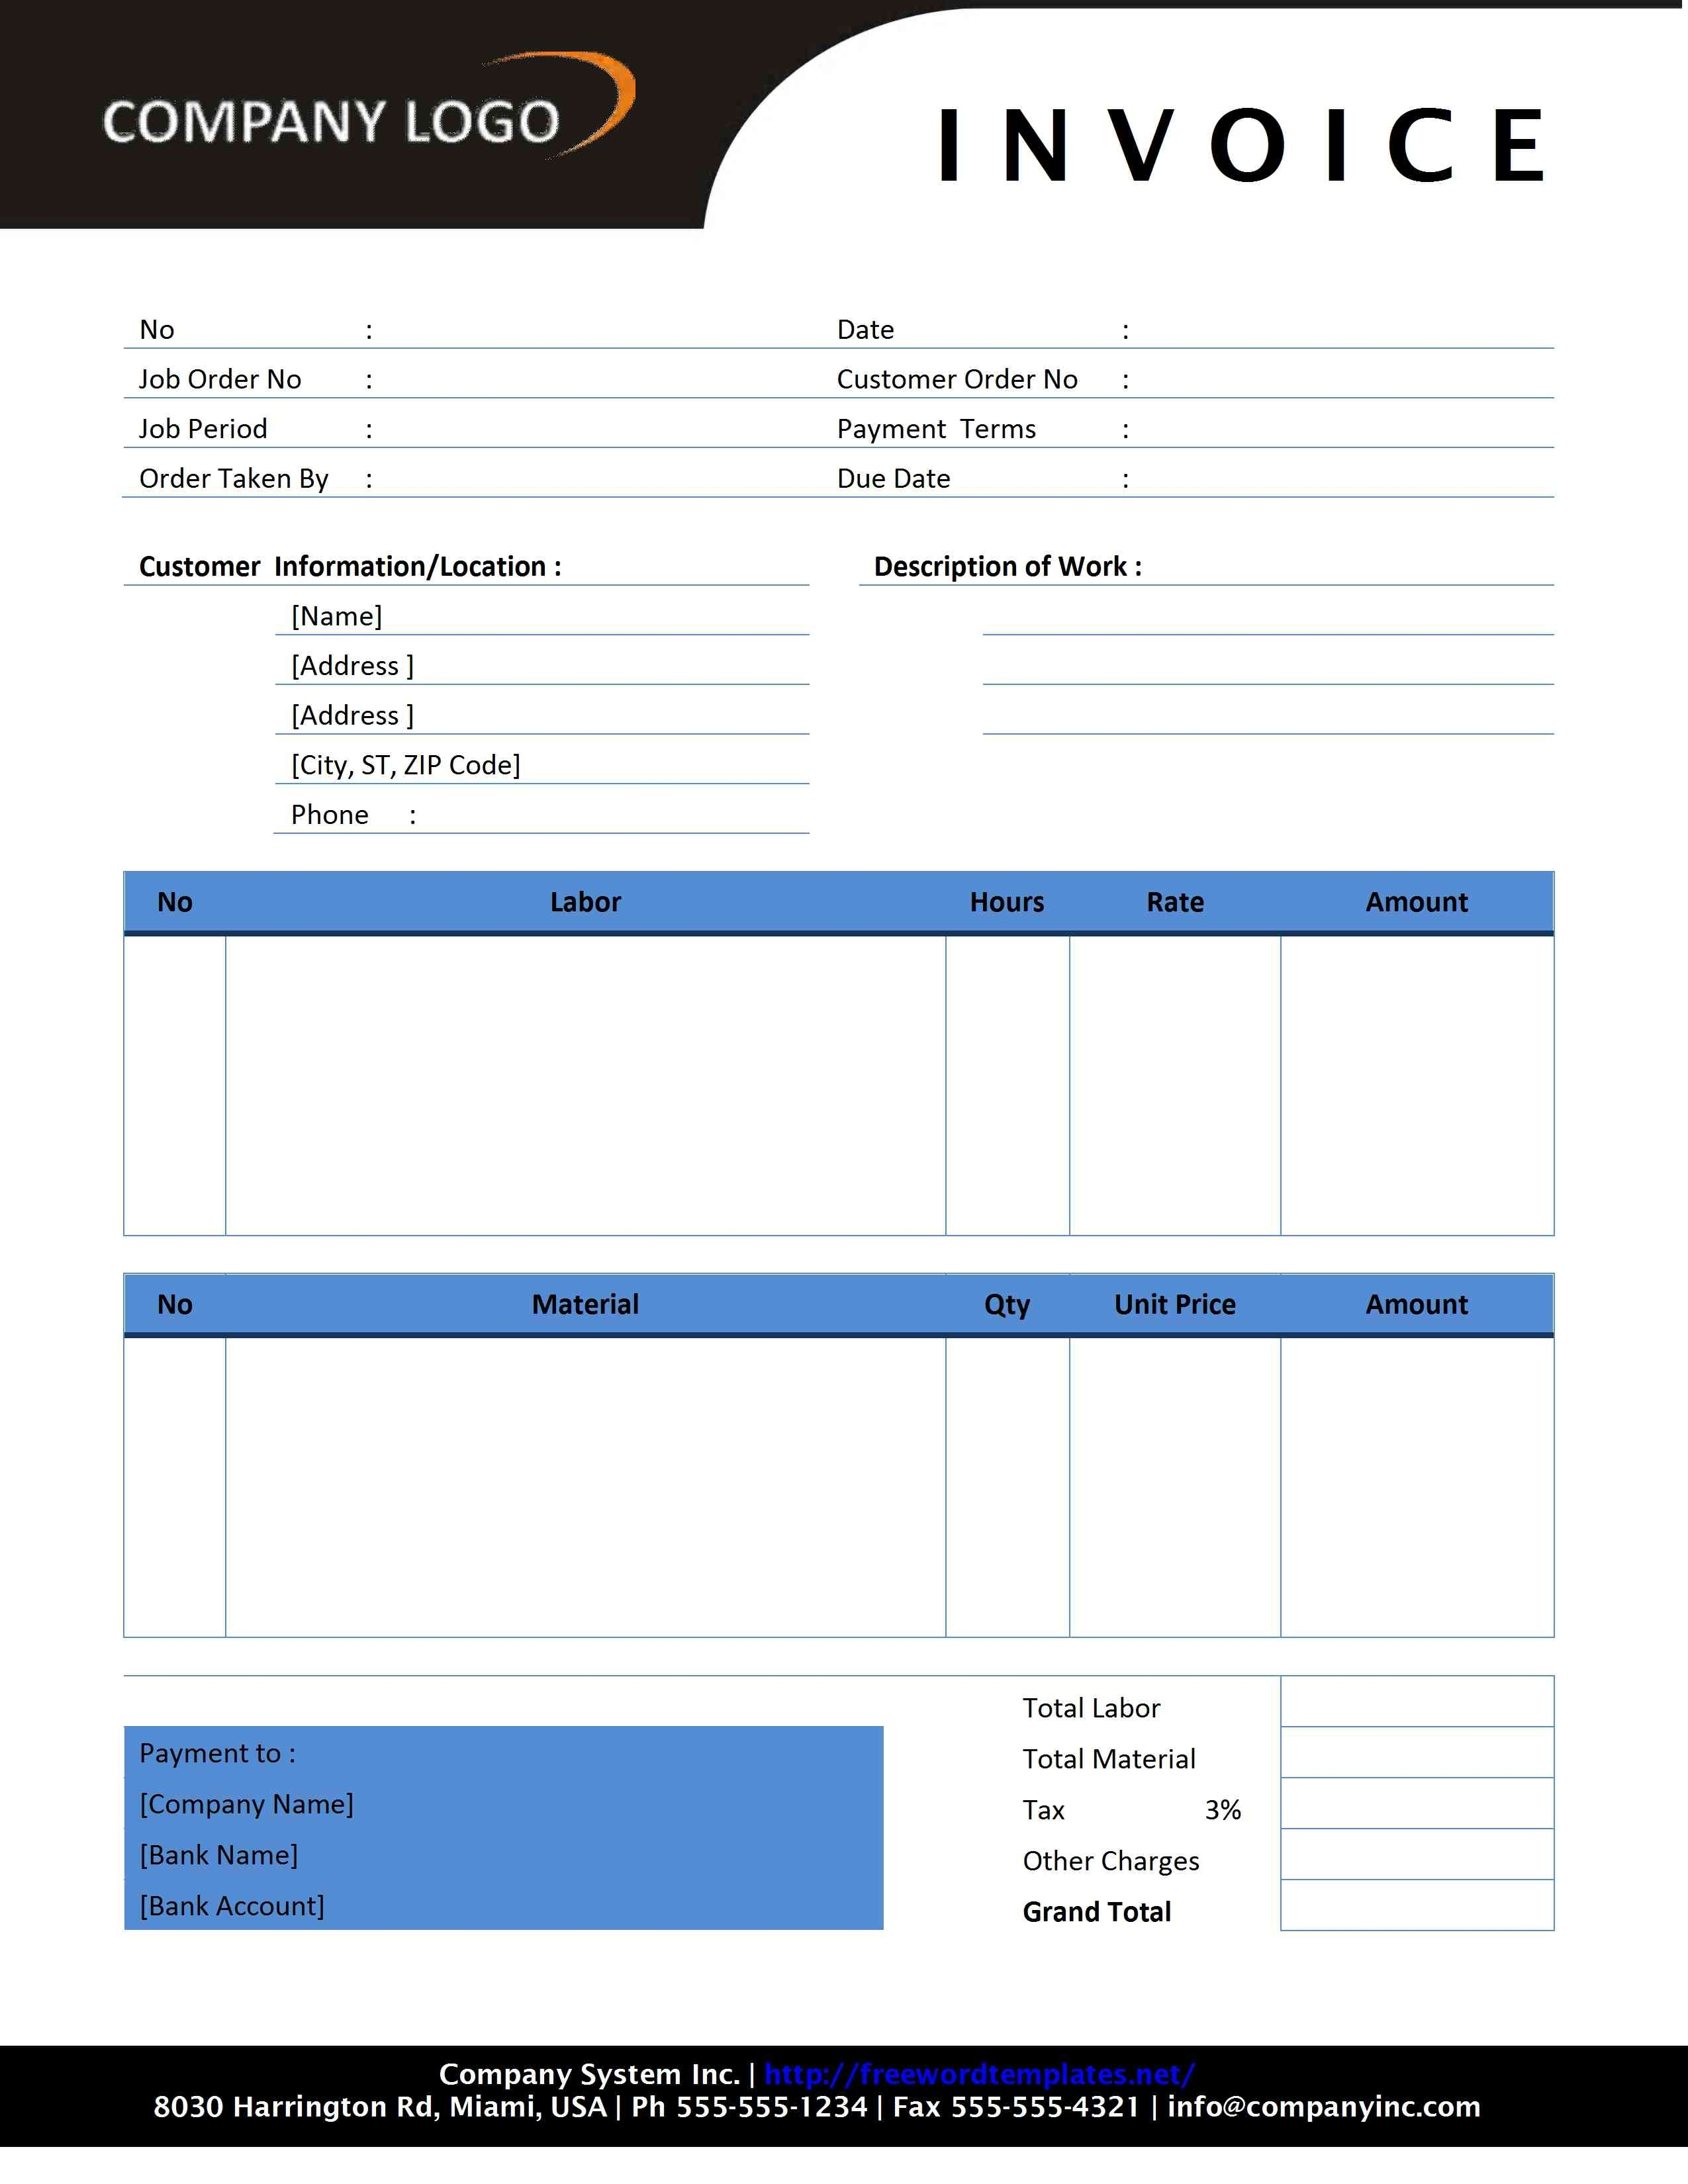 templates for invoices contractor invoice template free microsoft word templates 2550 X 3300